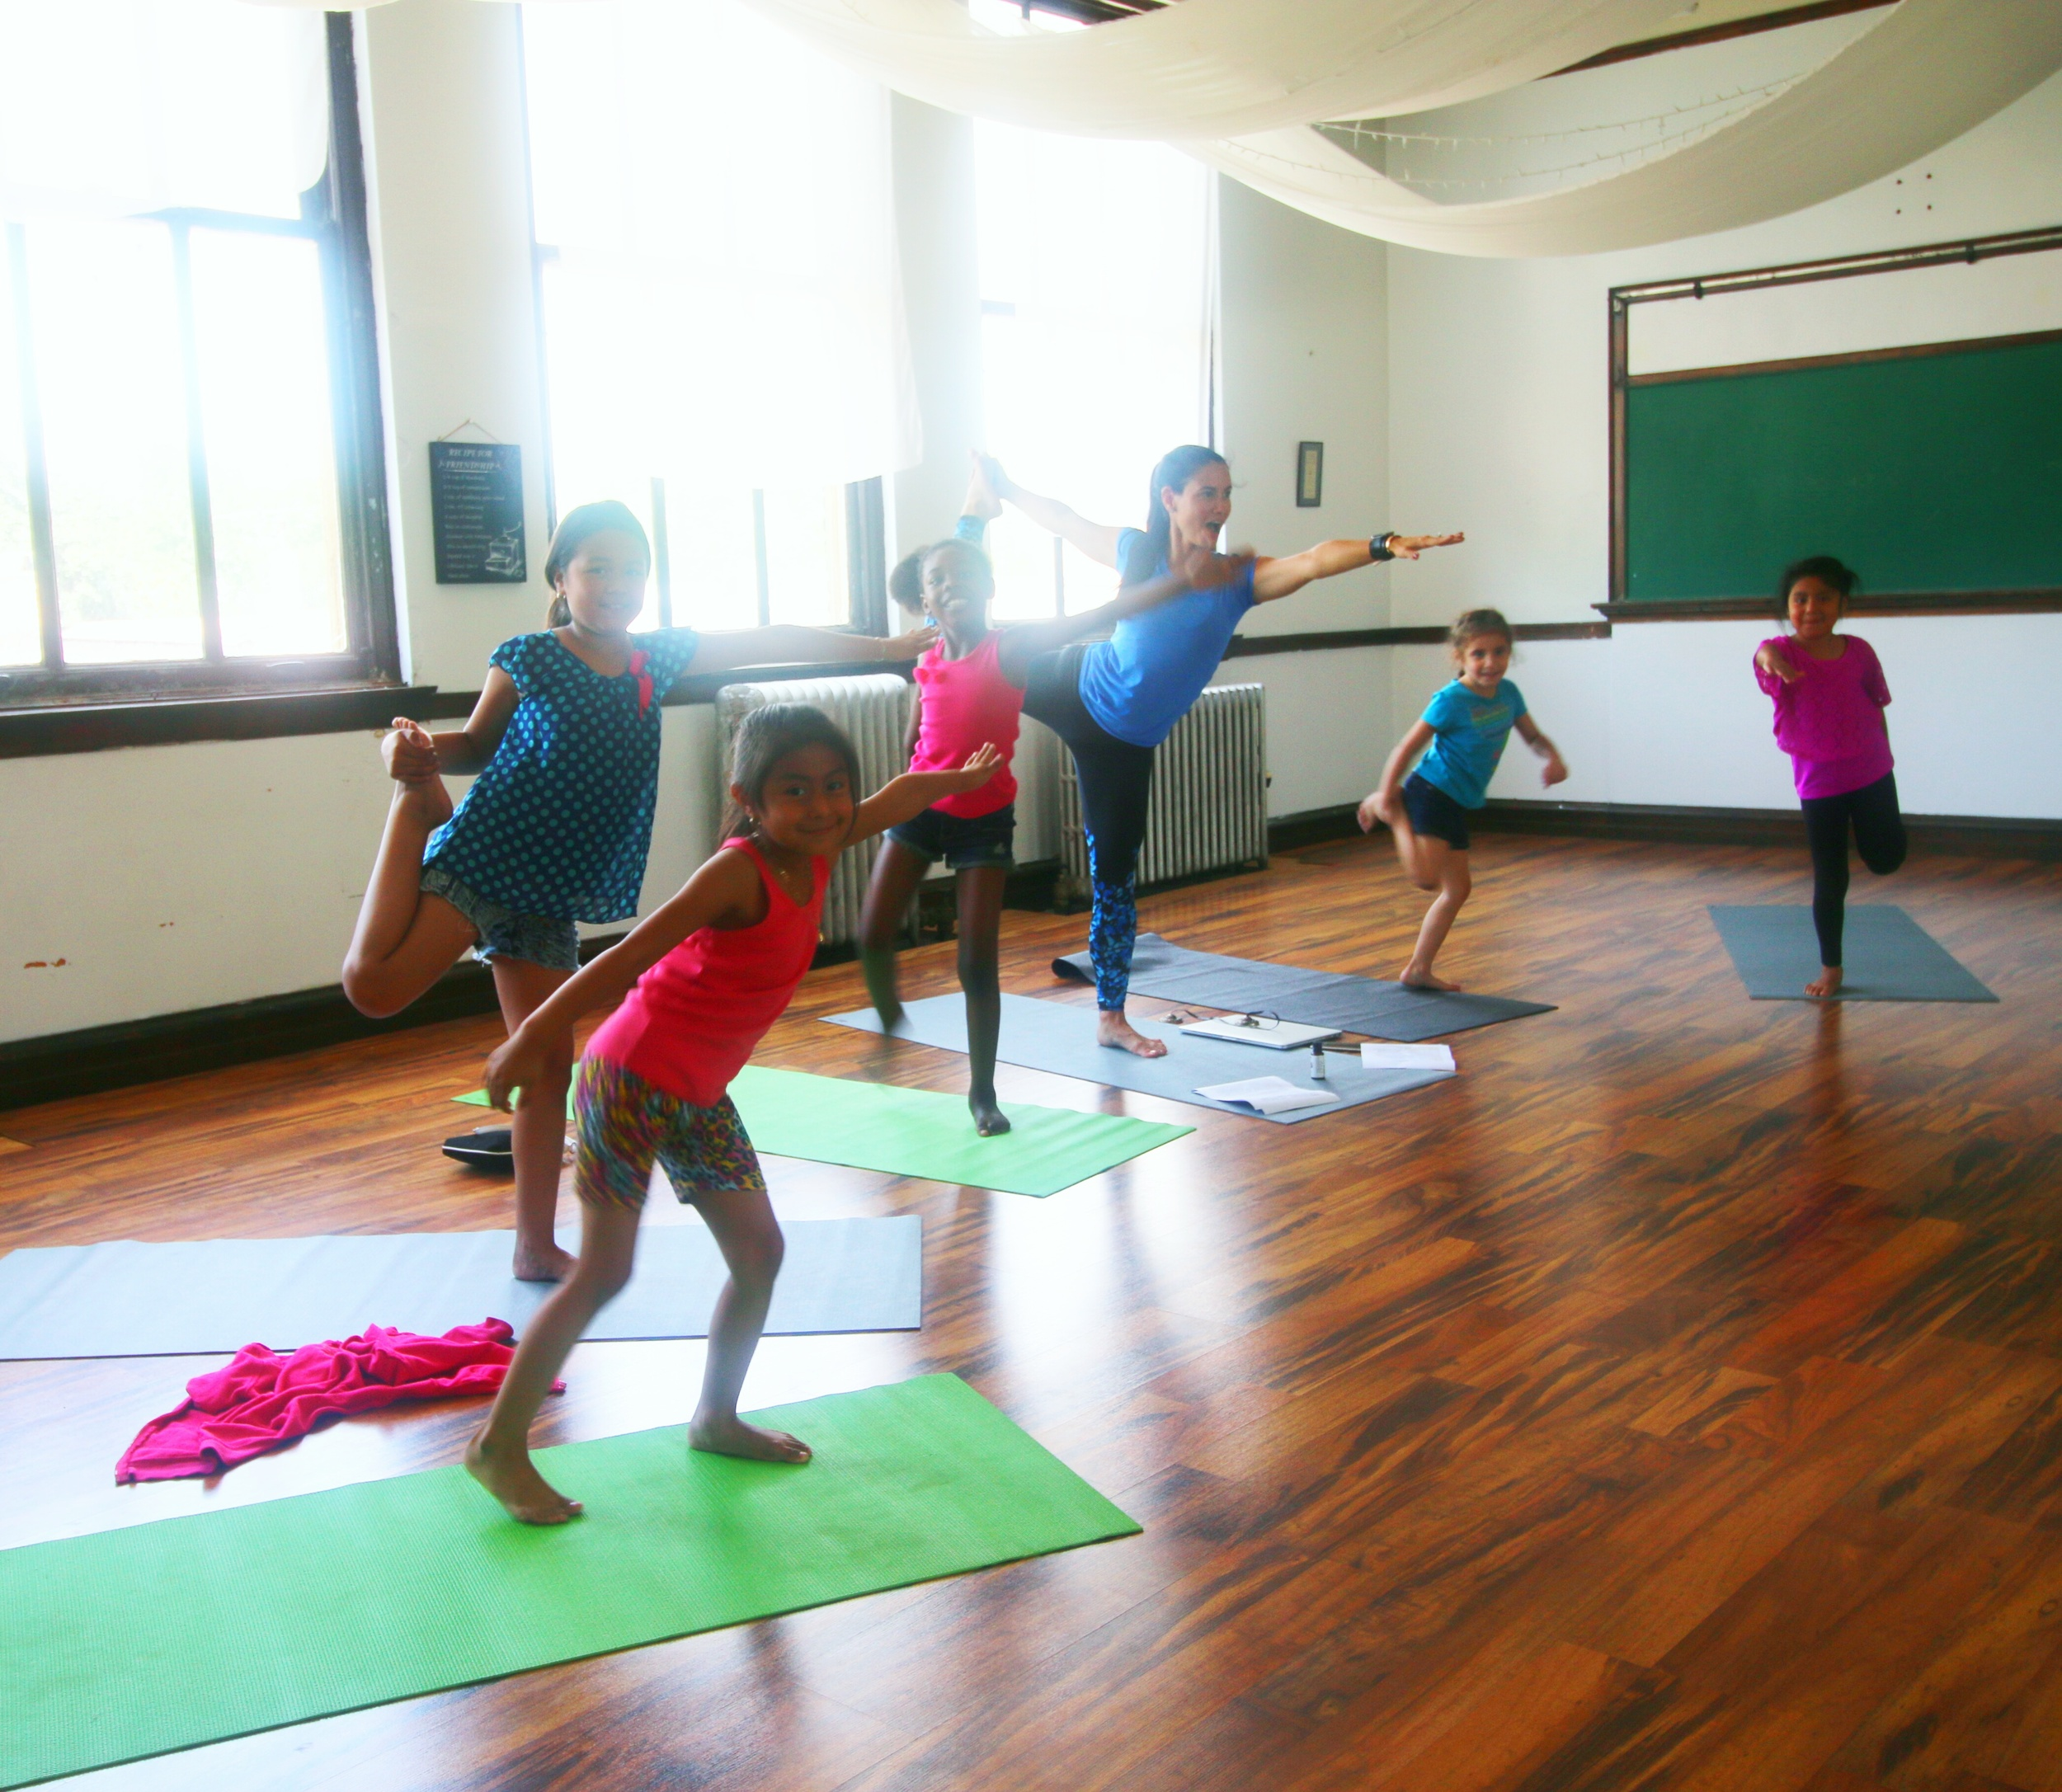 Kids at VBS Yoga at New Life Church Community Center in Chicago